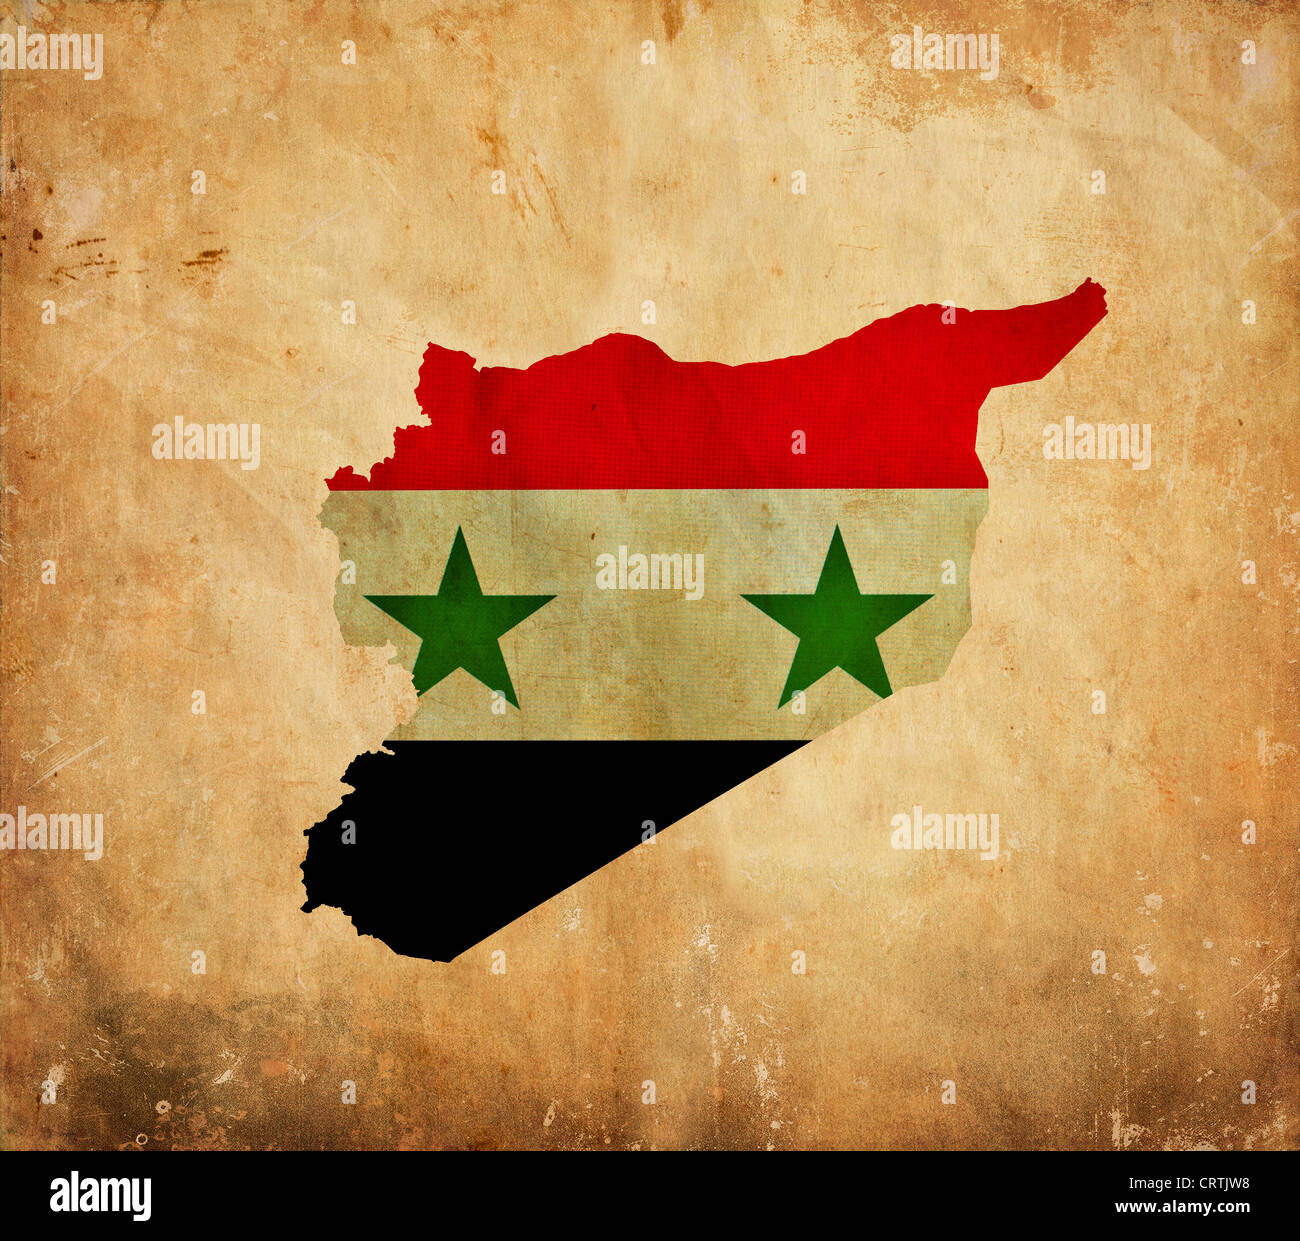 Vintage map of Syria on grunge paper Stock Photo